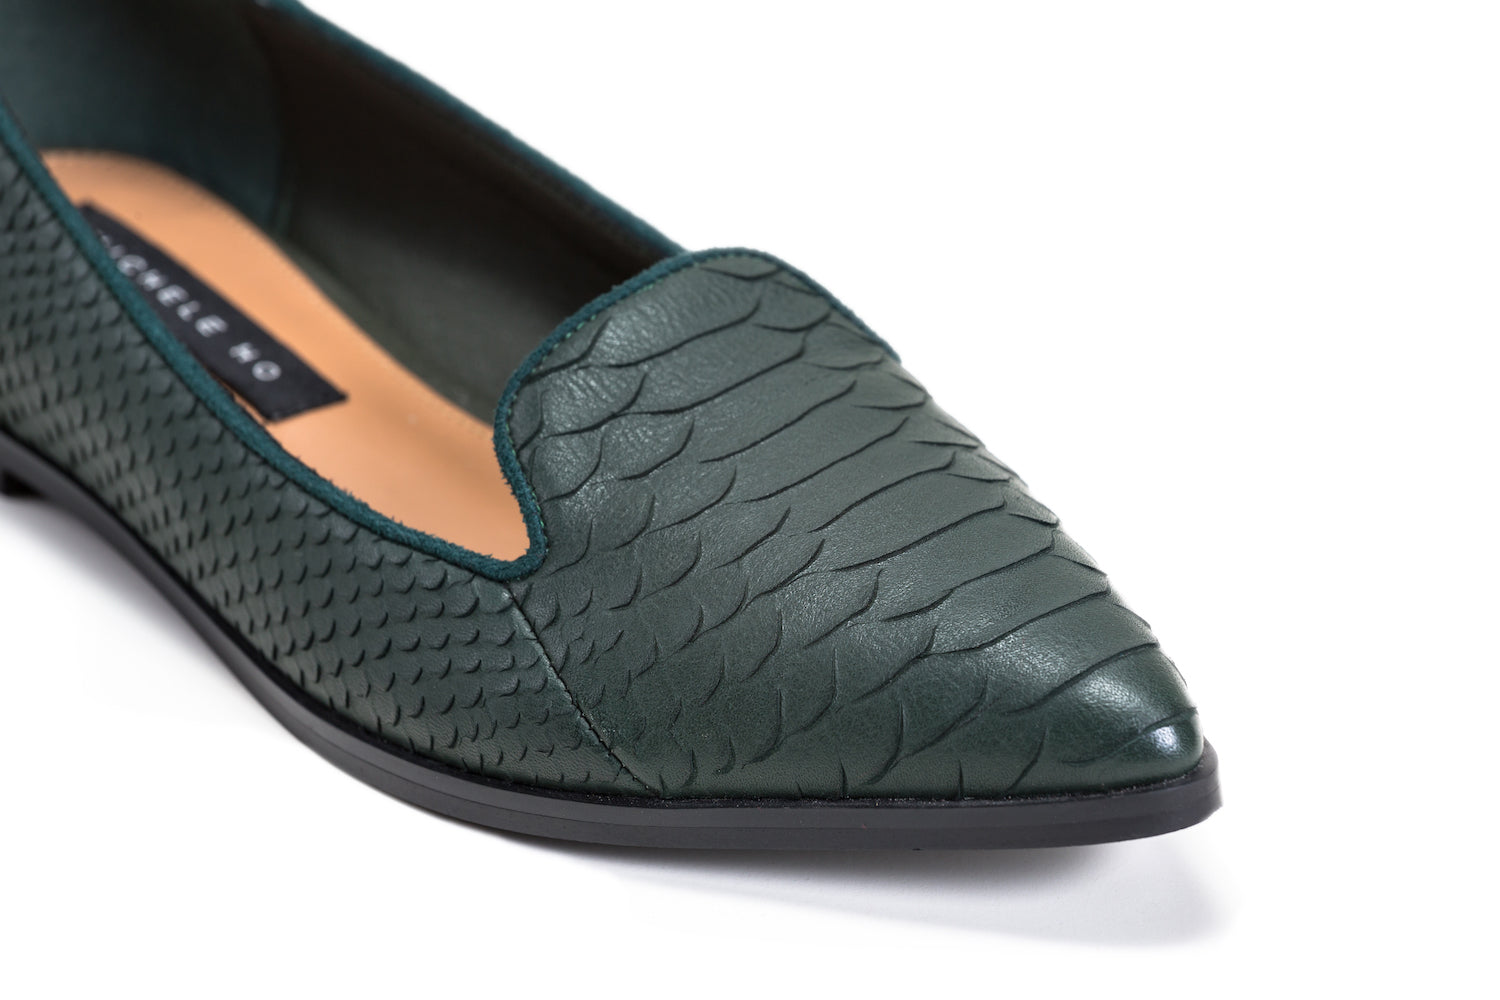 Comfortable flats Perfect for wide feet